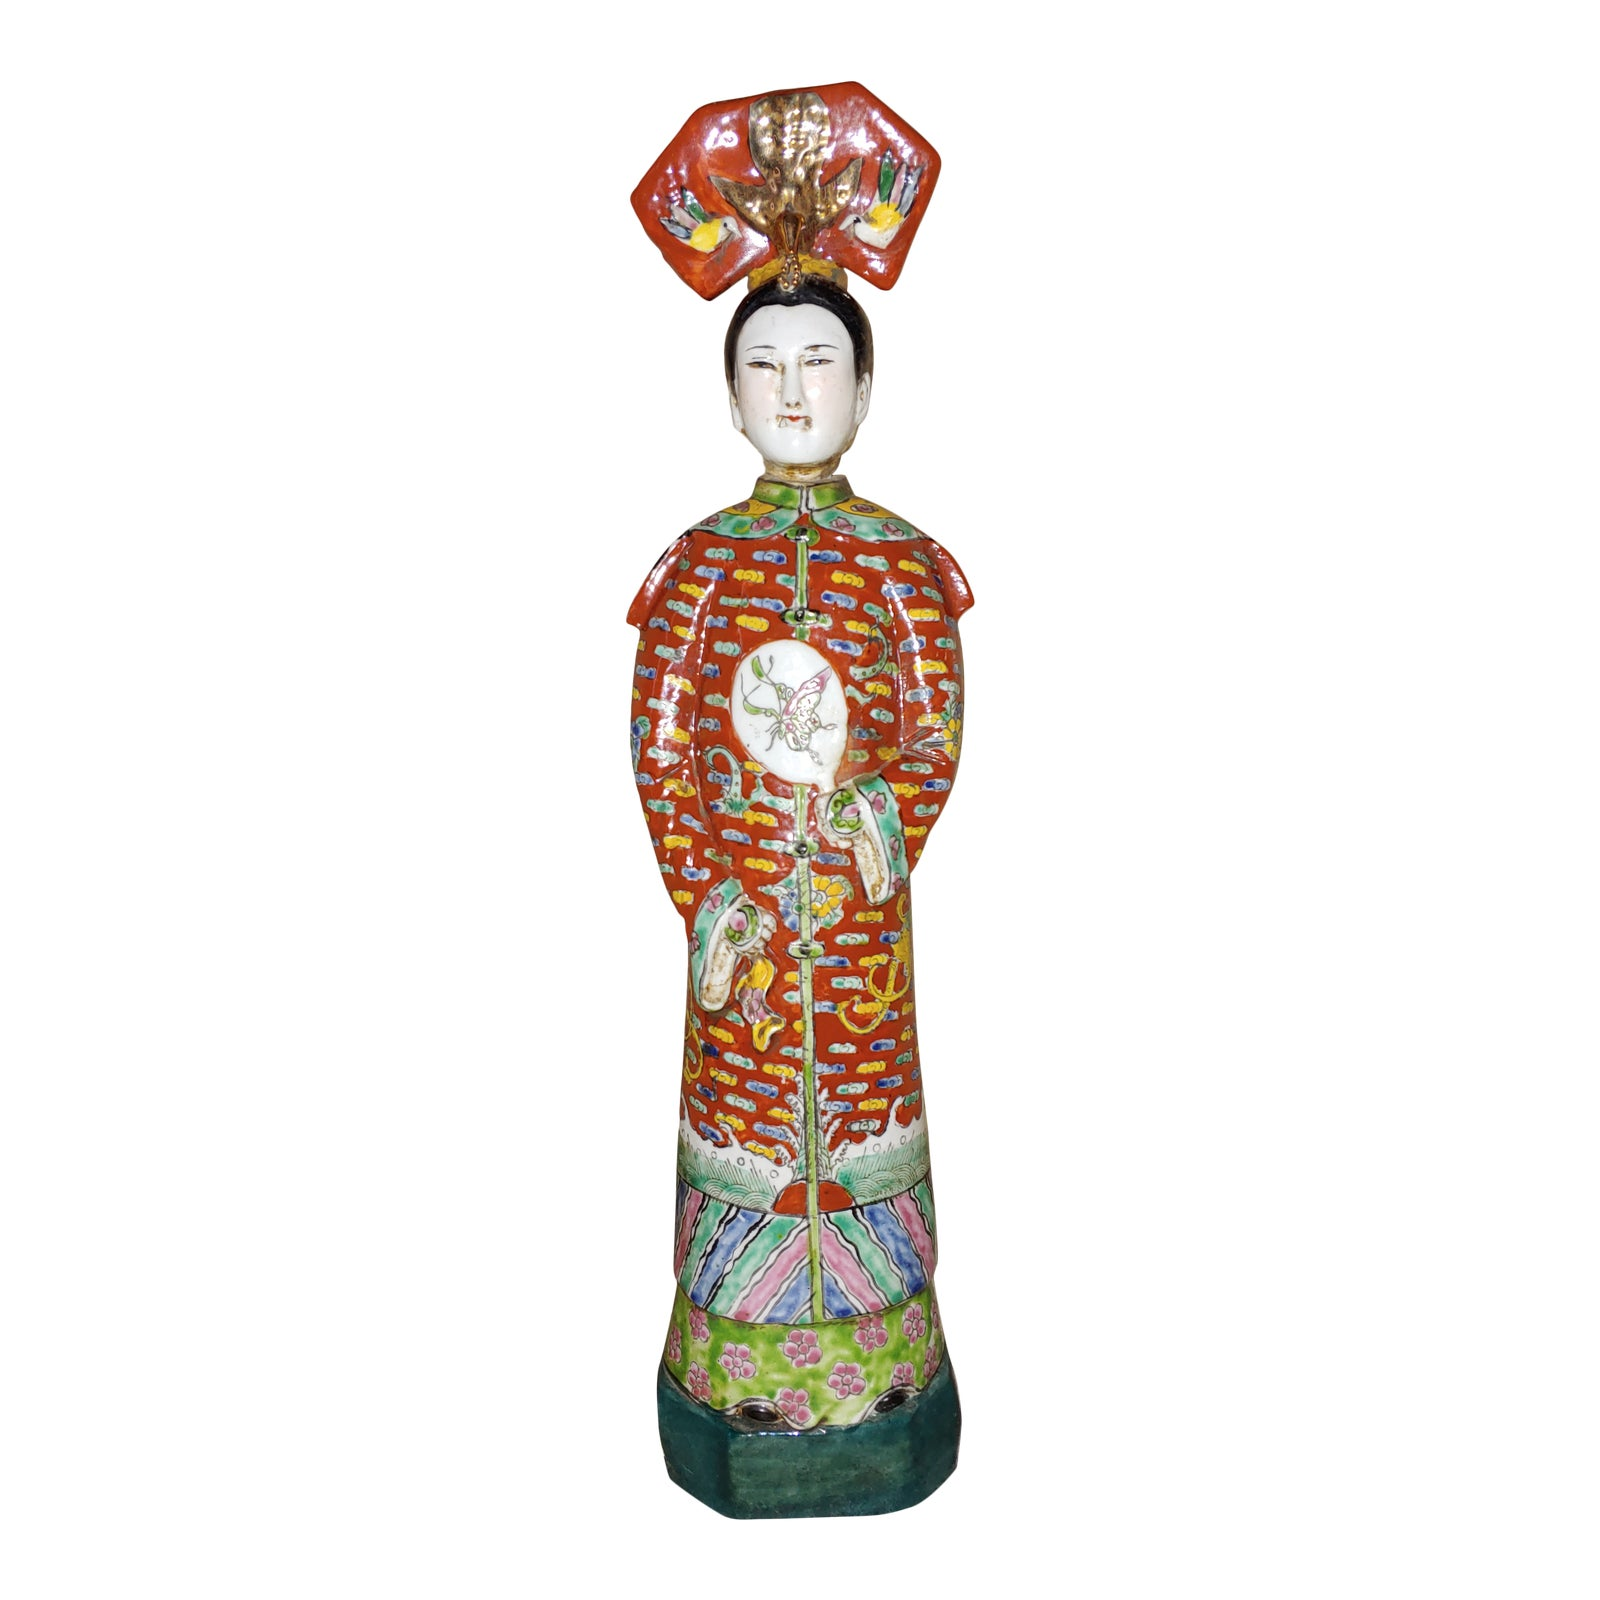 Chinese Famille Rose Porcelain Nodding Head Court Lady Figurine Chairish